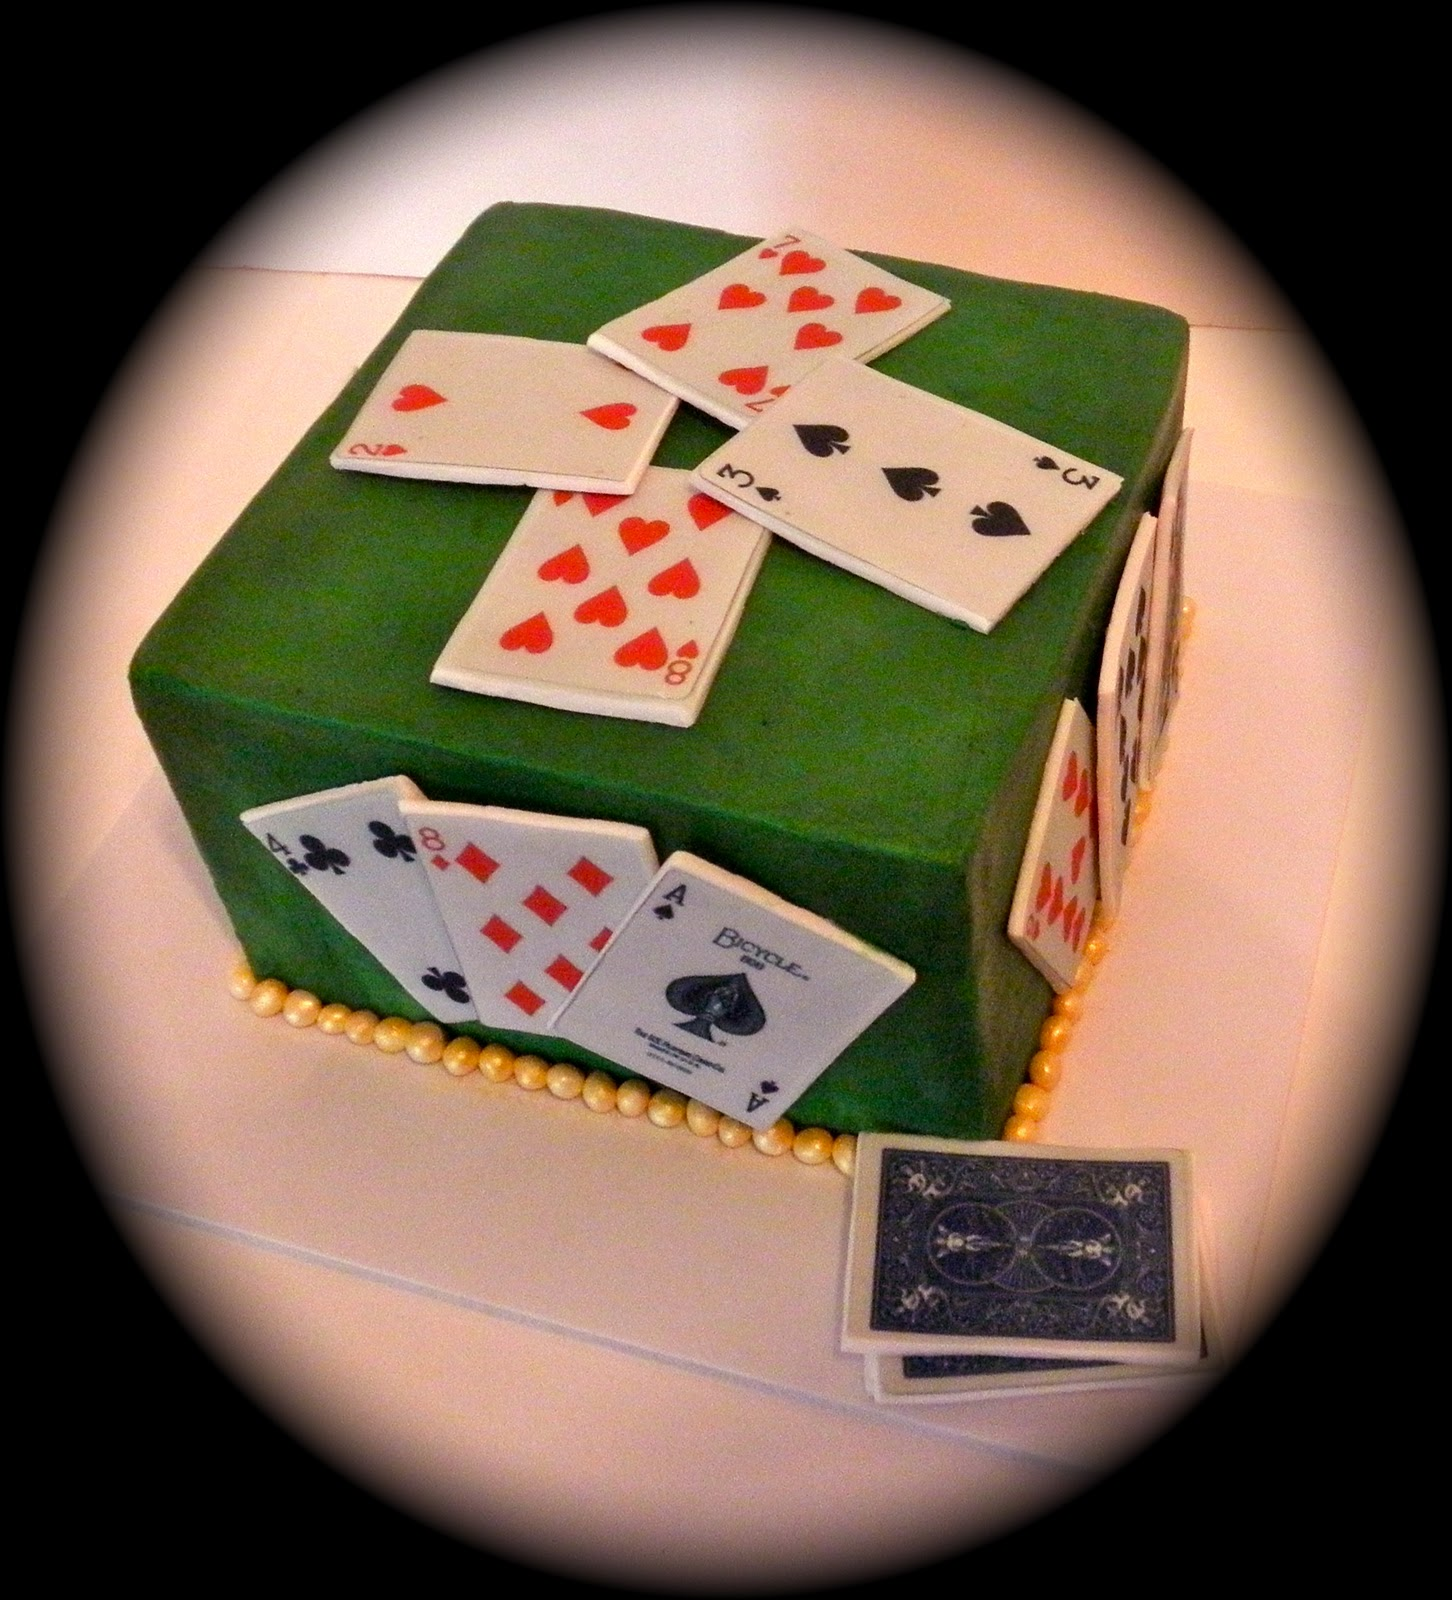 Sweet T S Cake Design Card Game Of Spades Special Occasion Cake